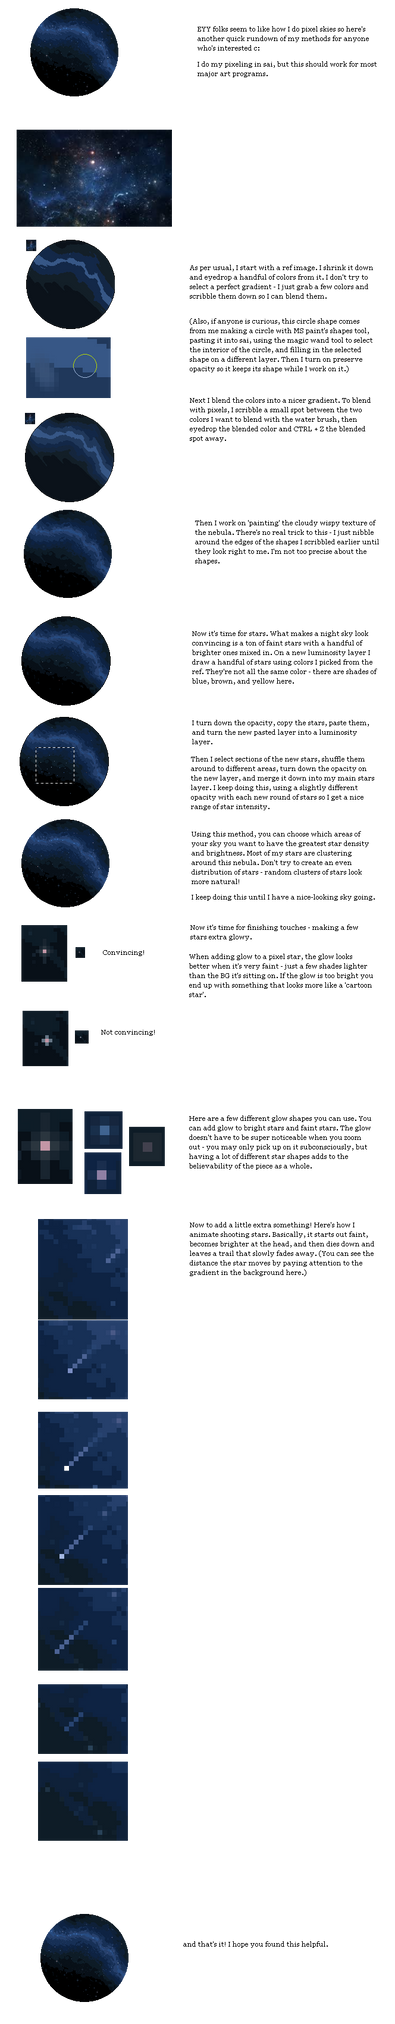 PIXEL + ANIMATION TUTORIAL: night sky by SqdPxl